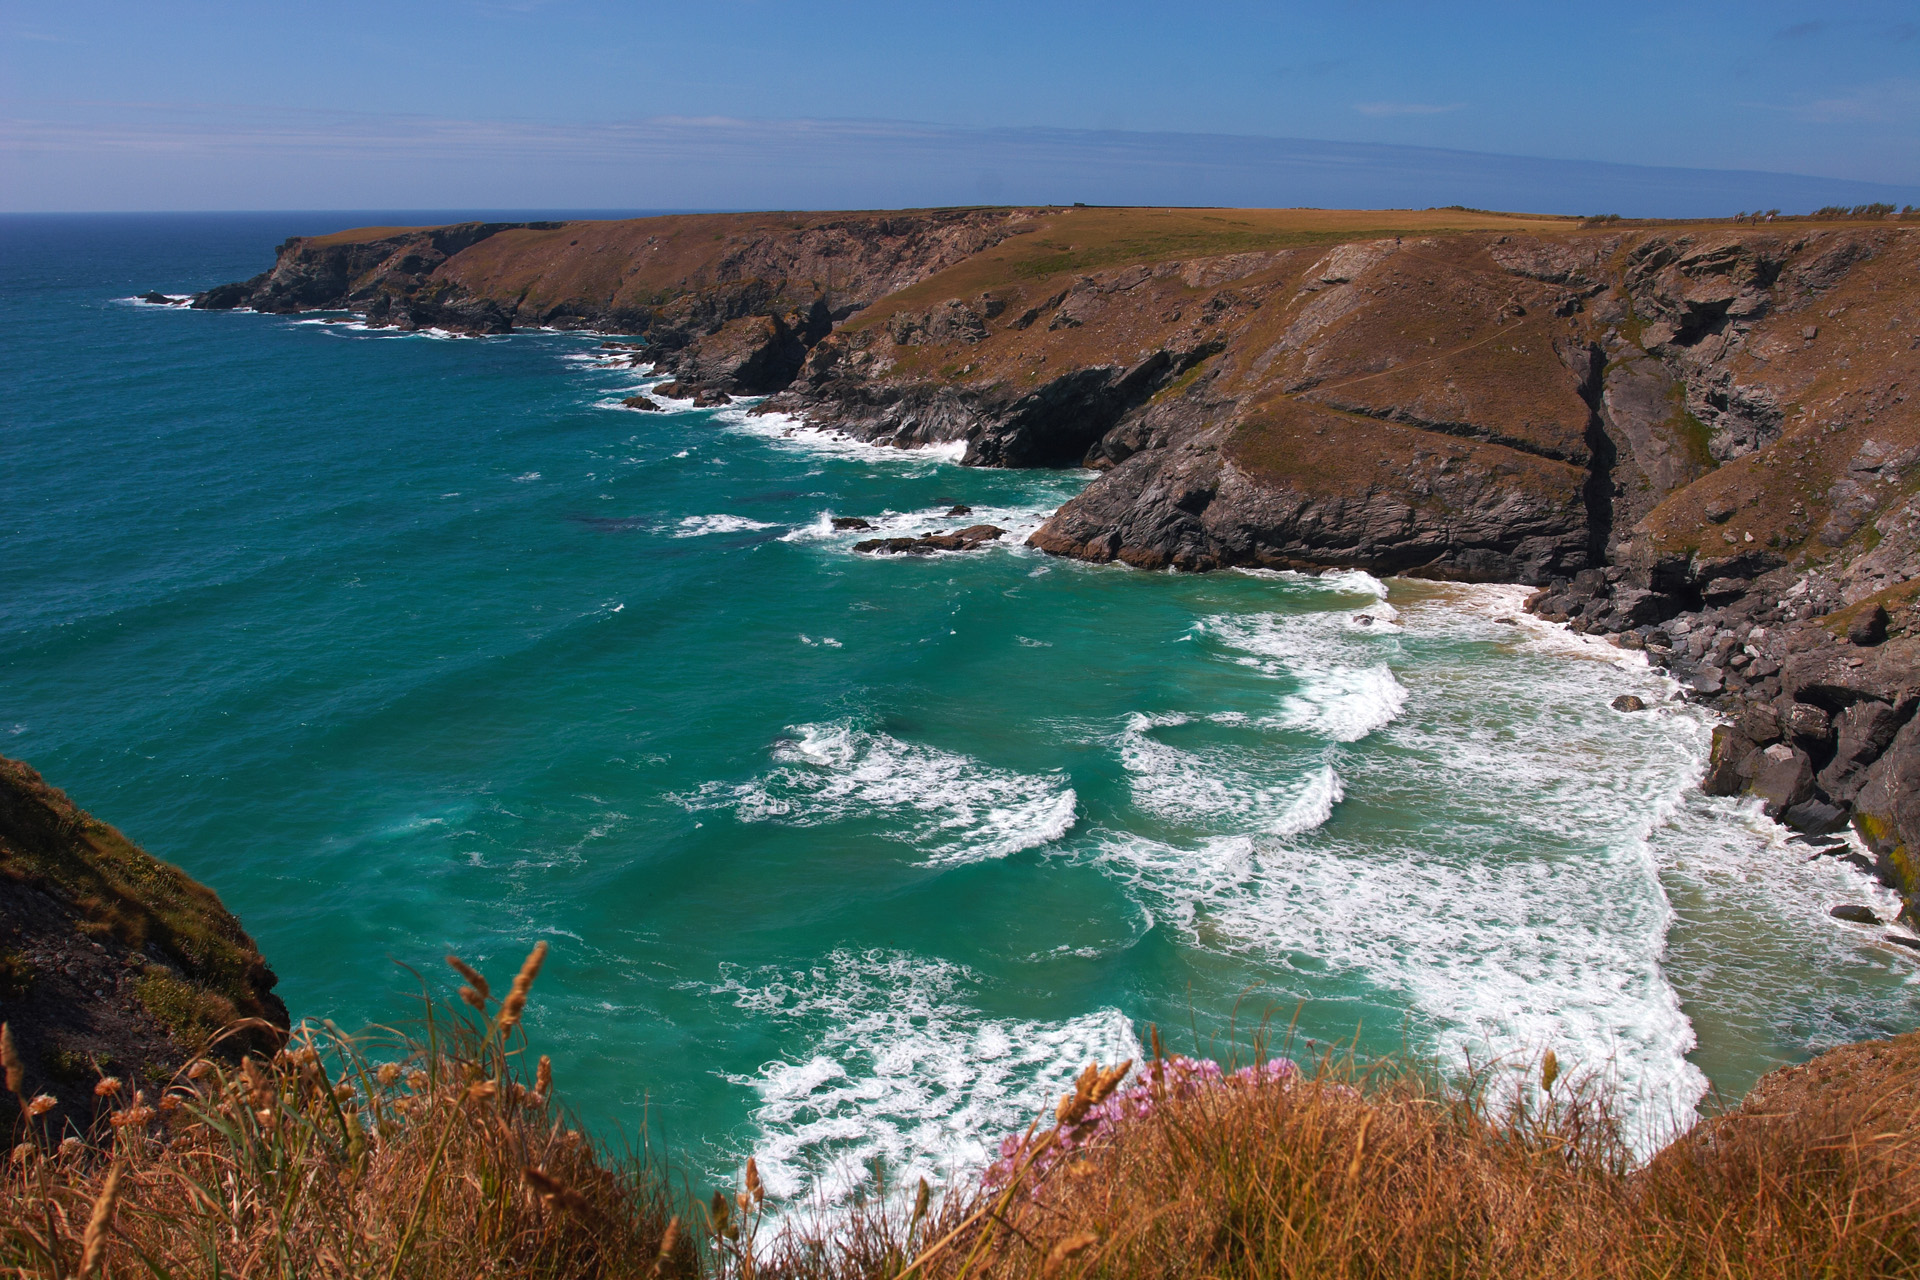 Waves breaking on the beach at Pentire Steps, Cornwall